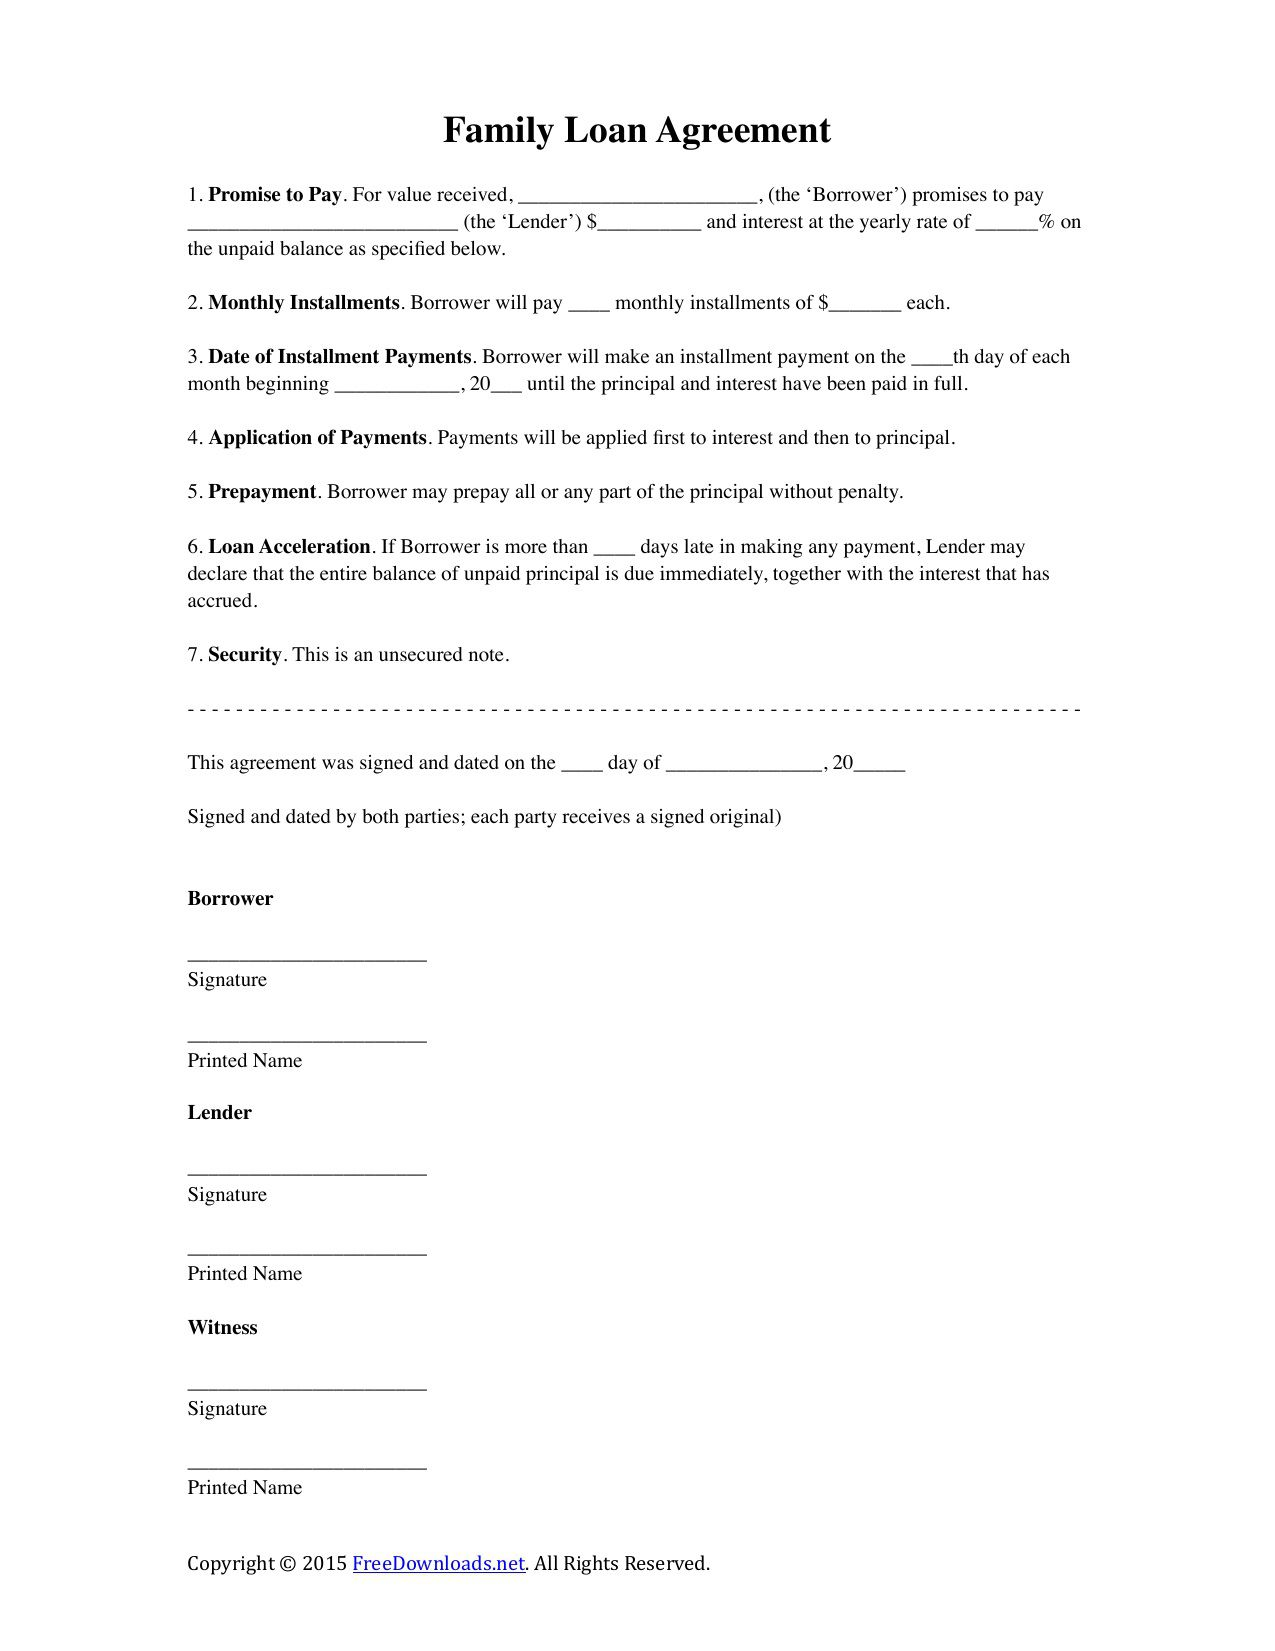 002 Stunning Family Loan Agreement Template Highest Clarity  Nz Uk FreeFull